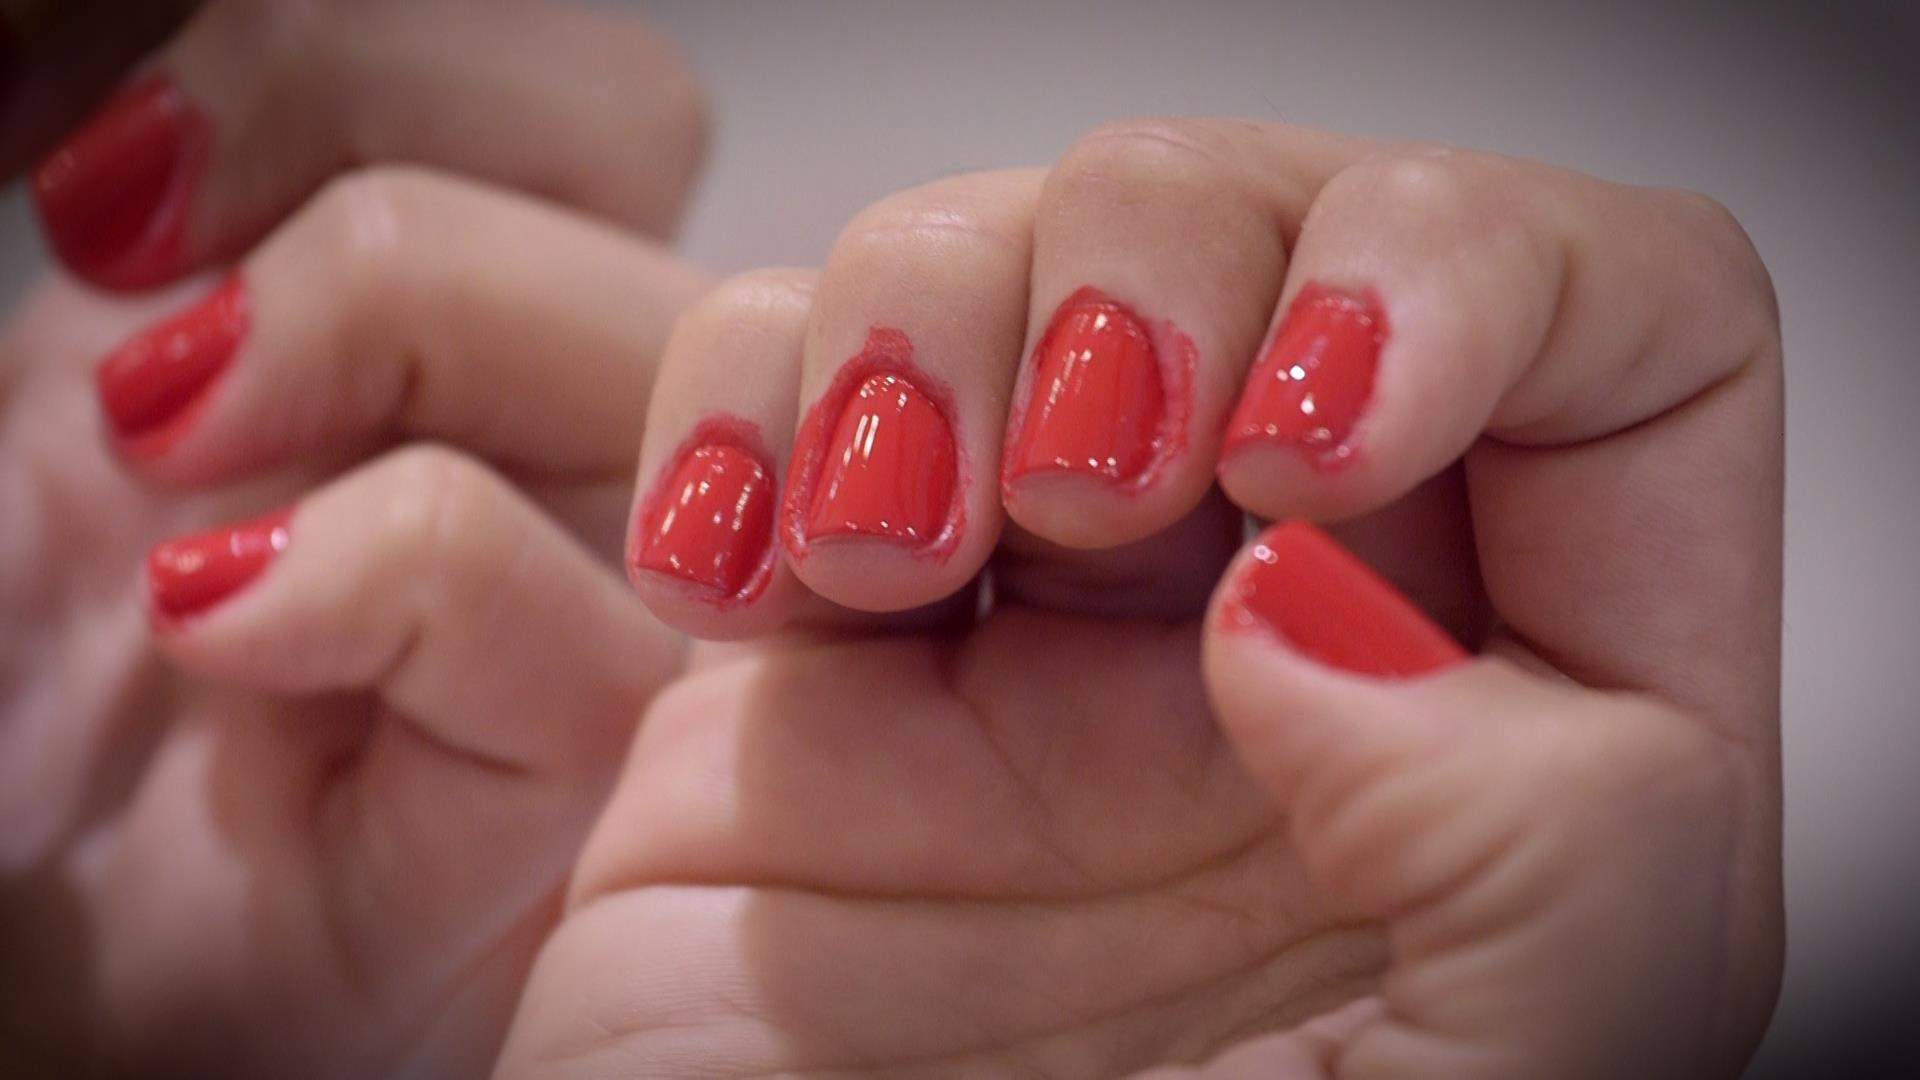 10 awful nail habits destroying your nails, and how to break them now